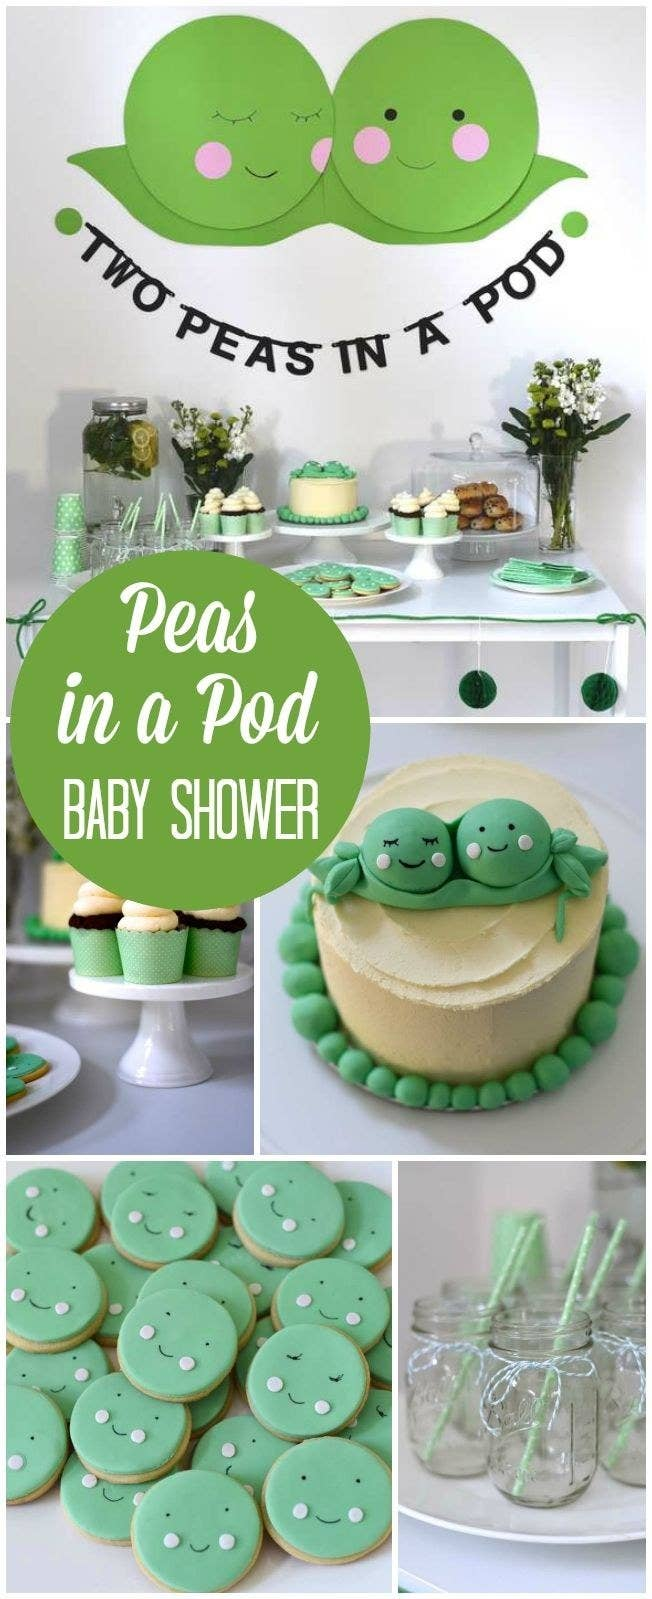 decorations balloon baby in shower supplies toys a pod decor peas kit two twin amazon decorating games com dp